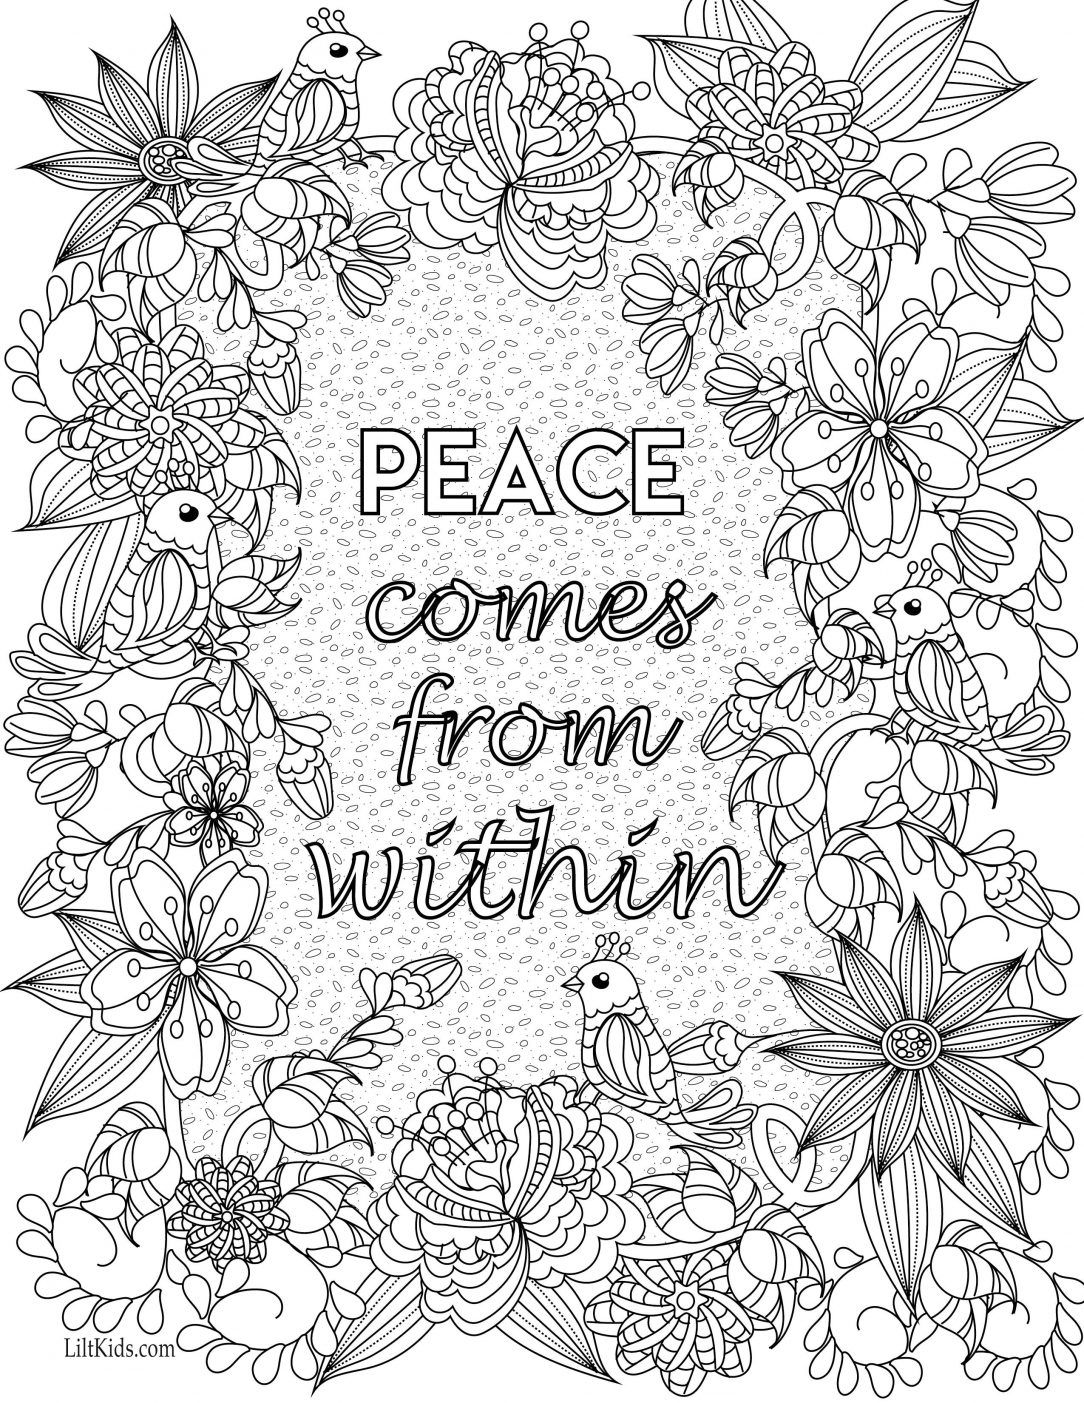 Coloring Pages Of Dogs Mandala With Quotes Pdf Quote Coloring Pages Coloring Pages Inspirational Kids Coloring Books